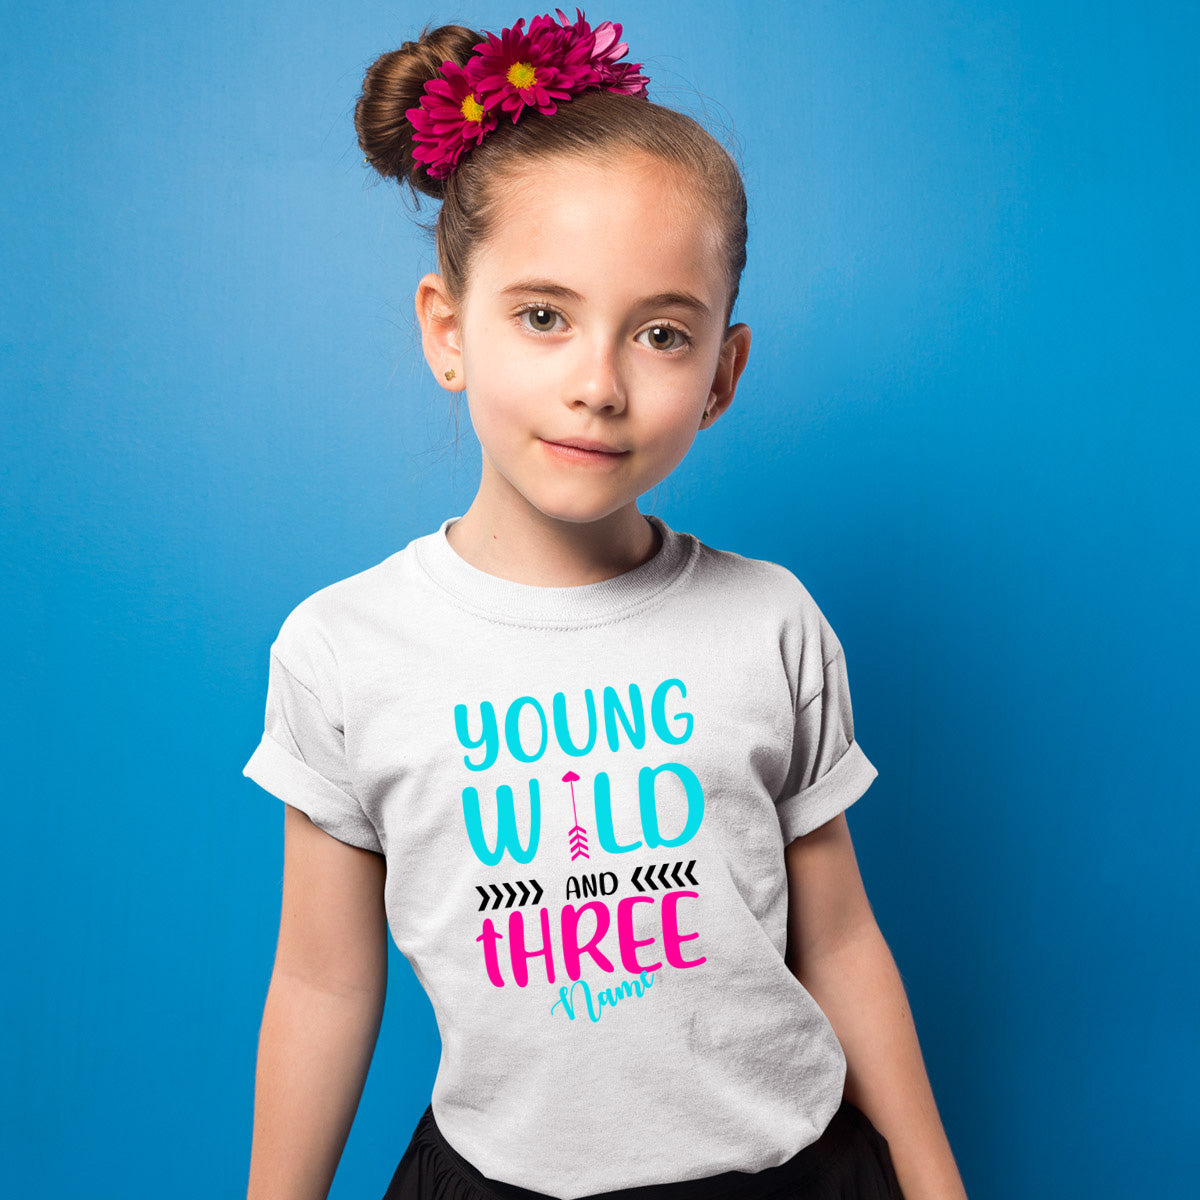 Sprinklecart Young Wild and Three Printed Birthday T Shirt | Personalized 3rd Birthday Wear